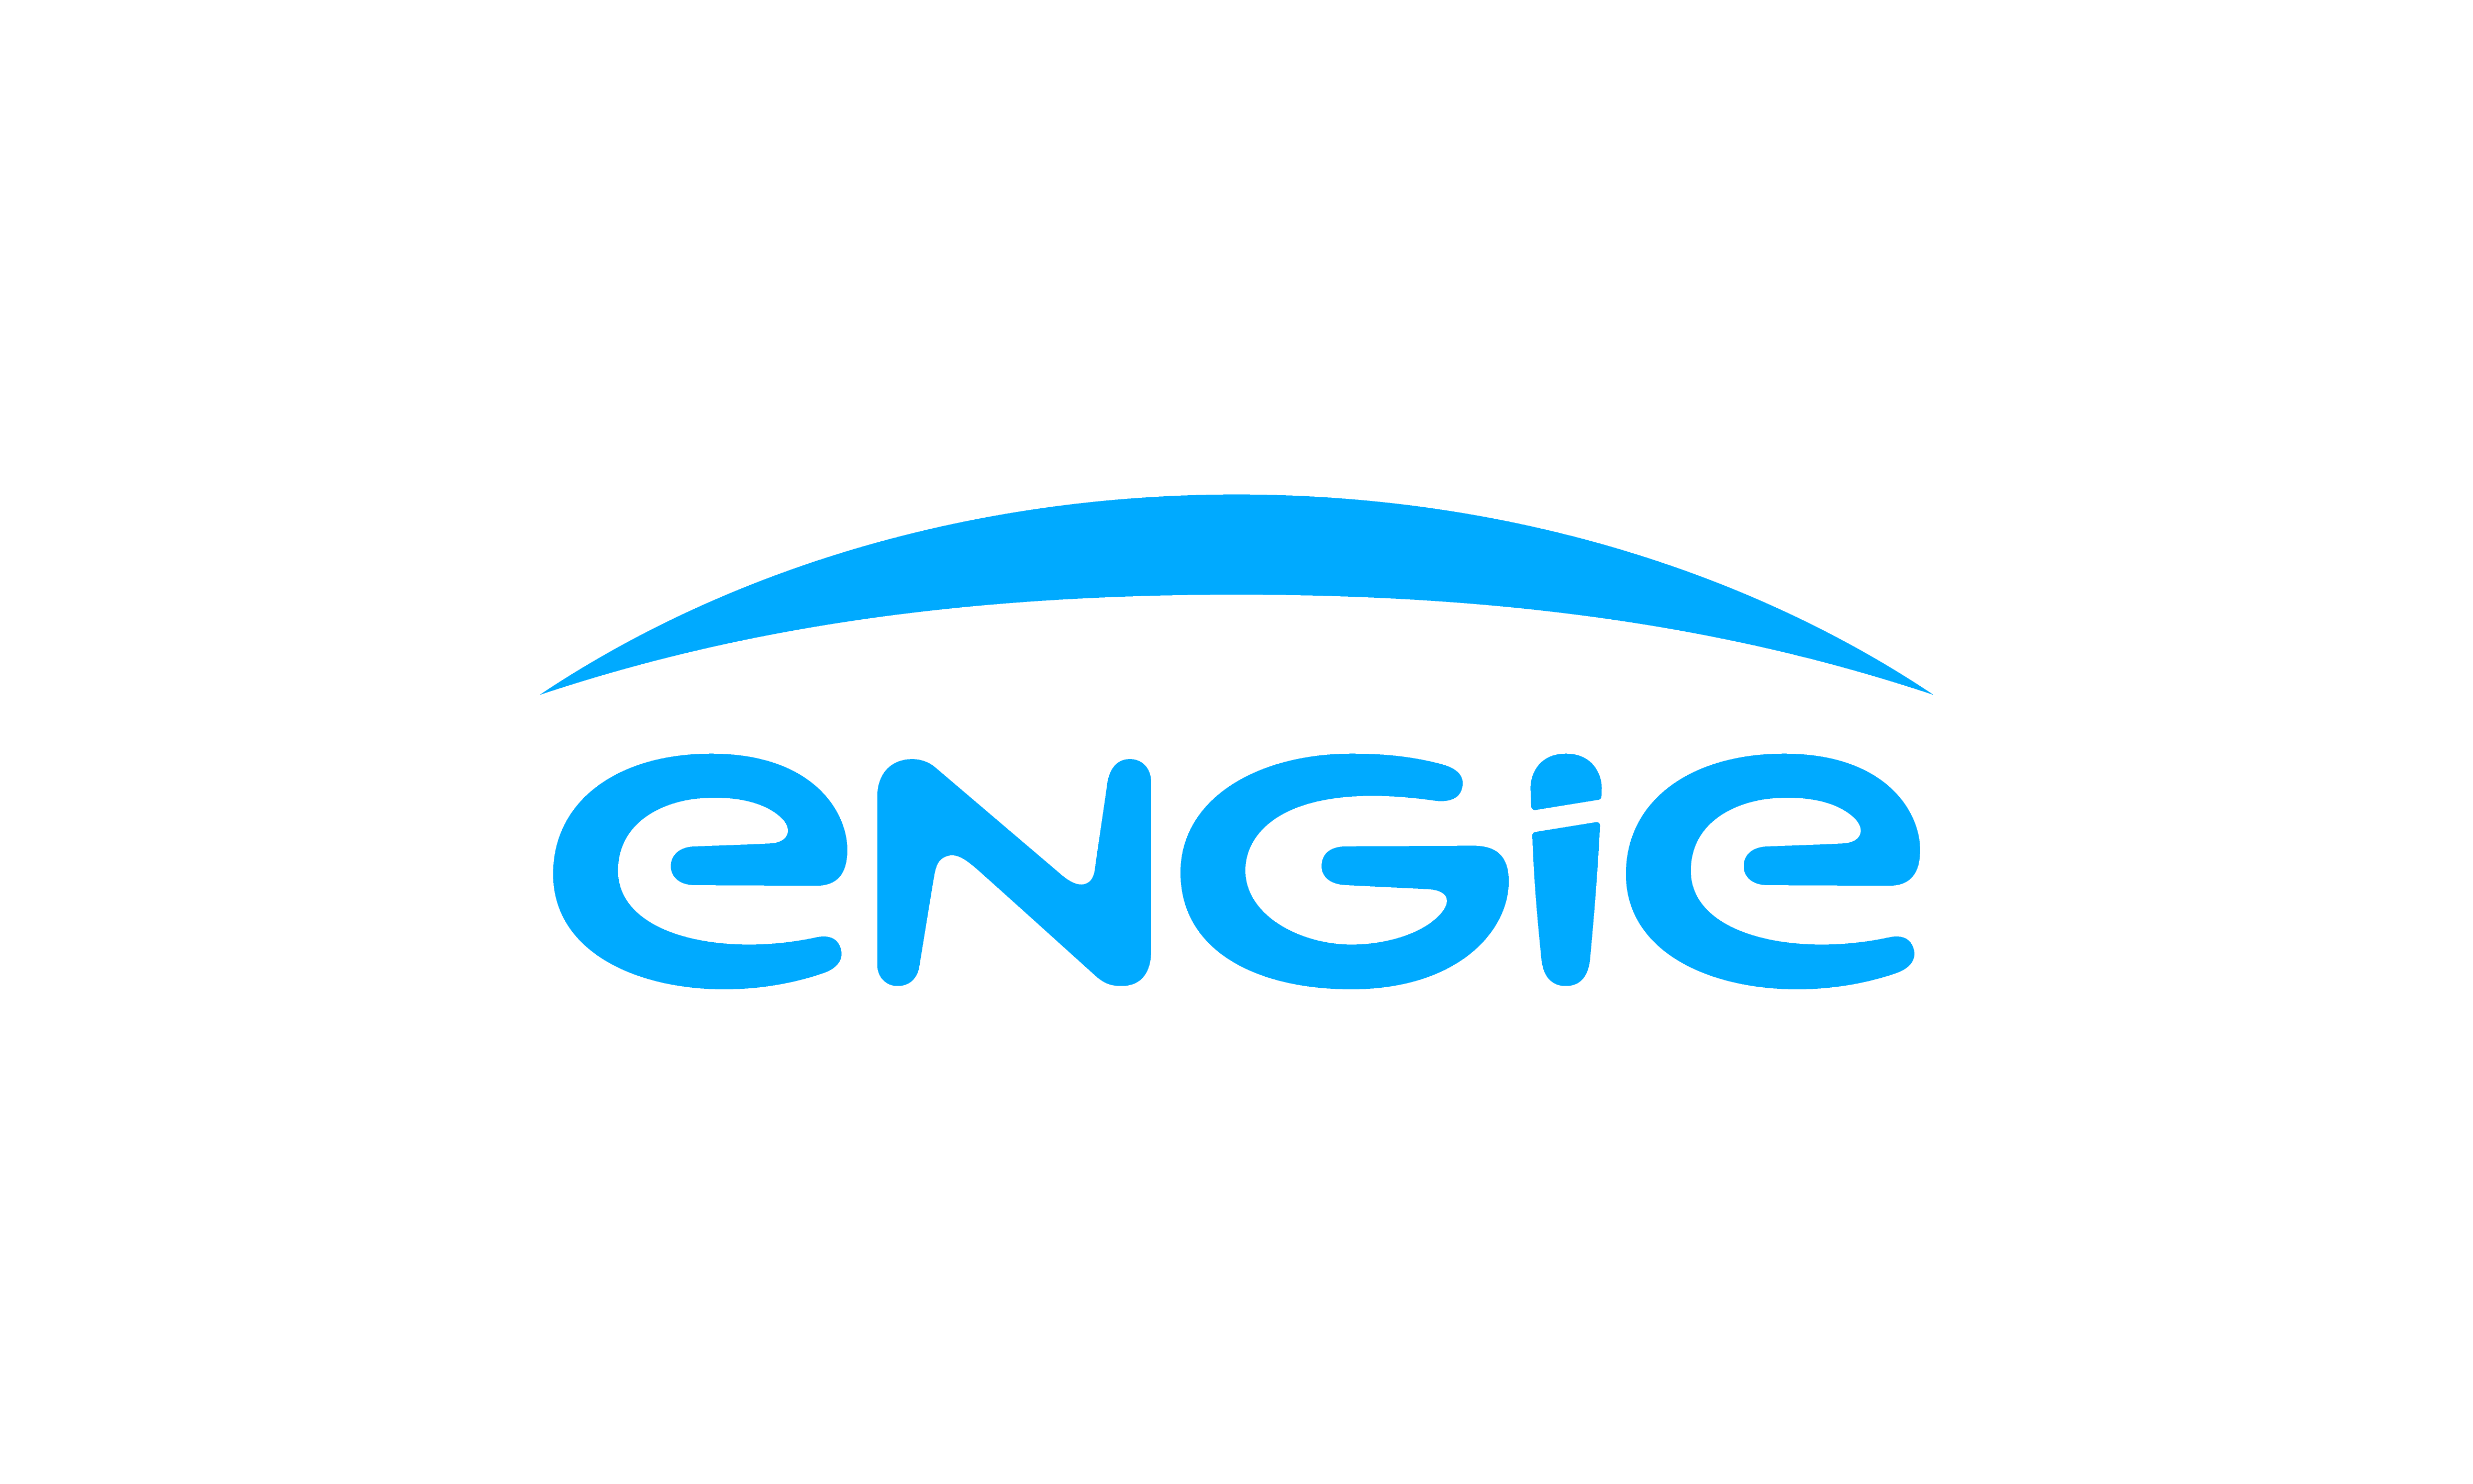 Engie - Wikiwand